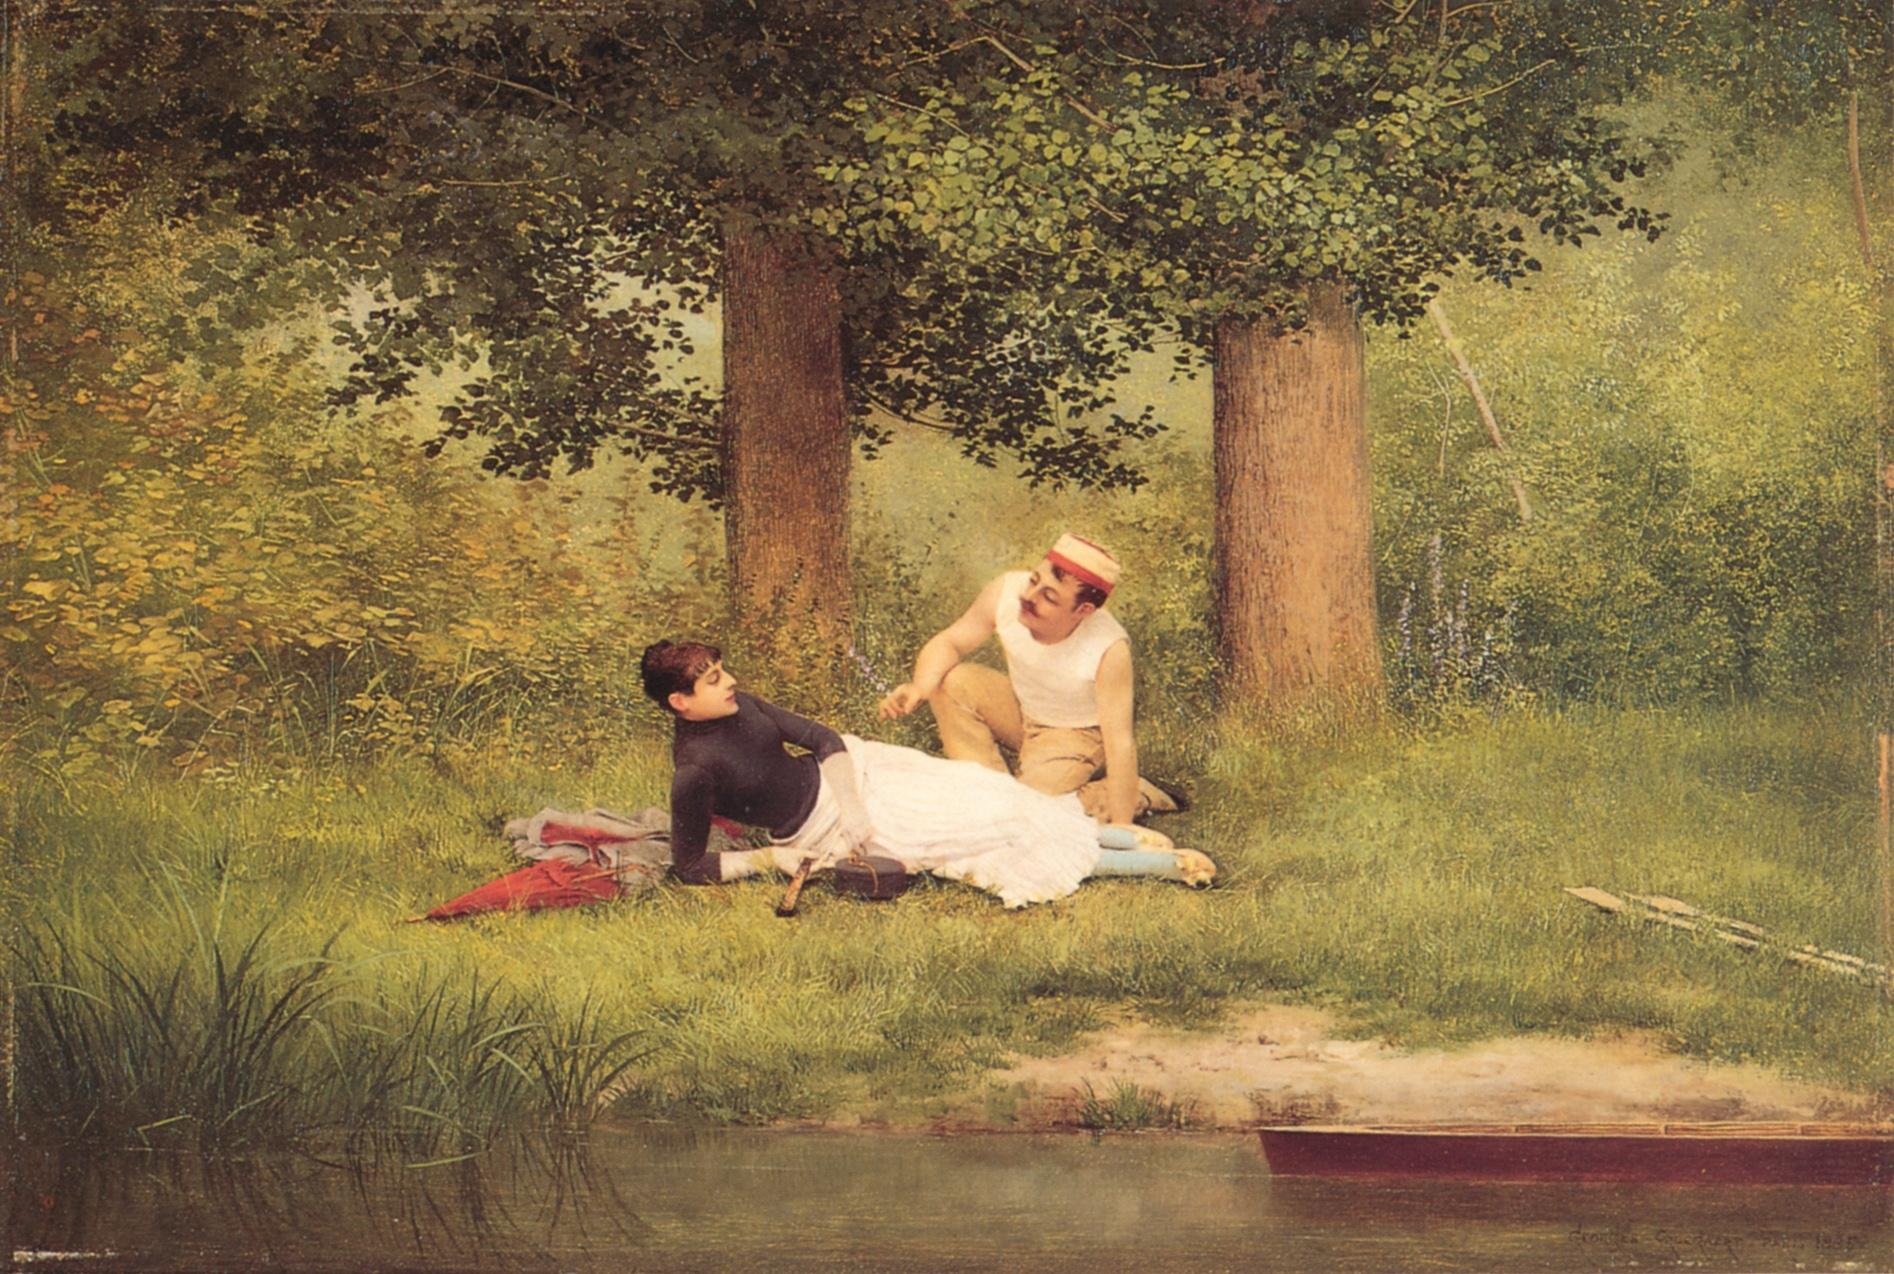 Paintings Reproductions Croegaert, Georges The Flirtation, 1885.